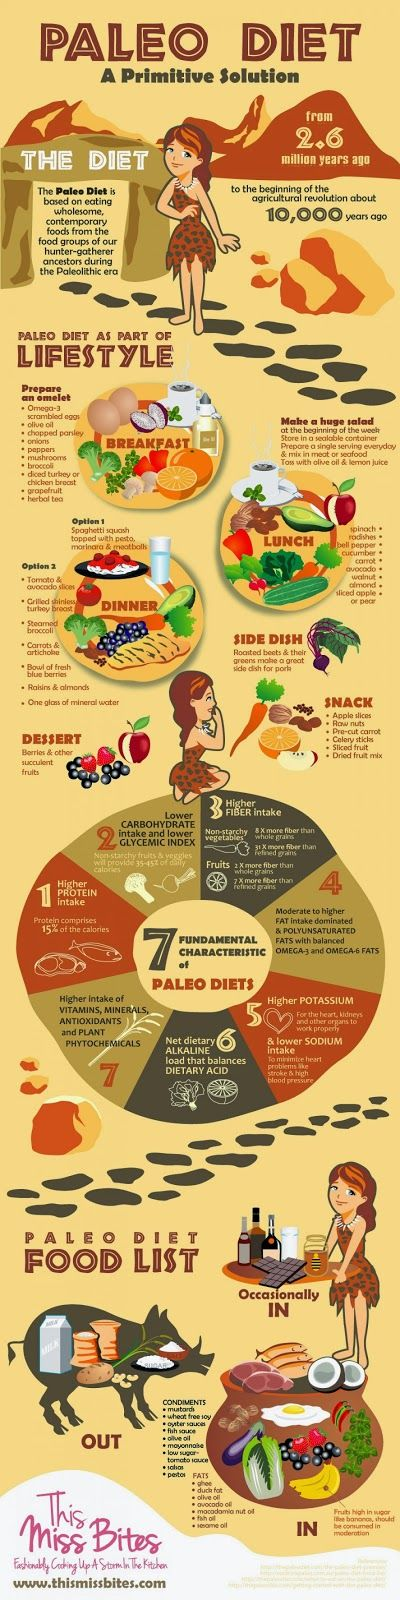 The Best Male And Female Weight Loss Products Reviewed: The Paleo Diet Explained 1/4